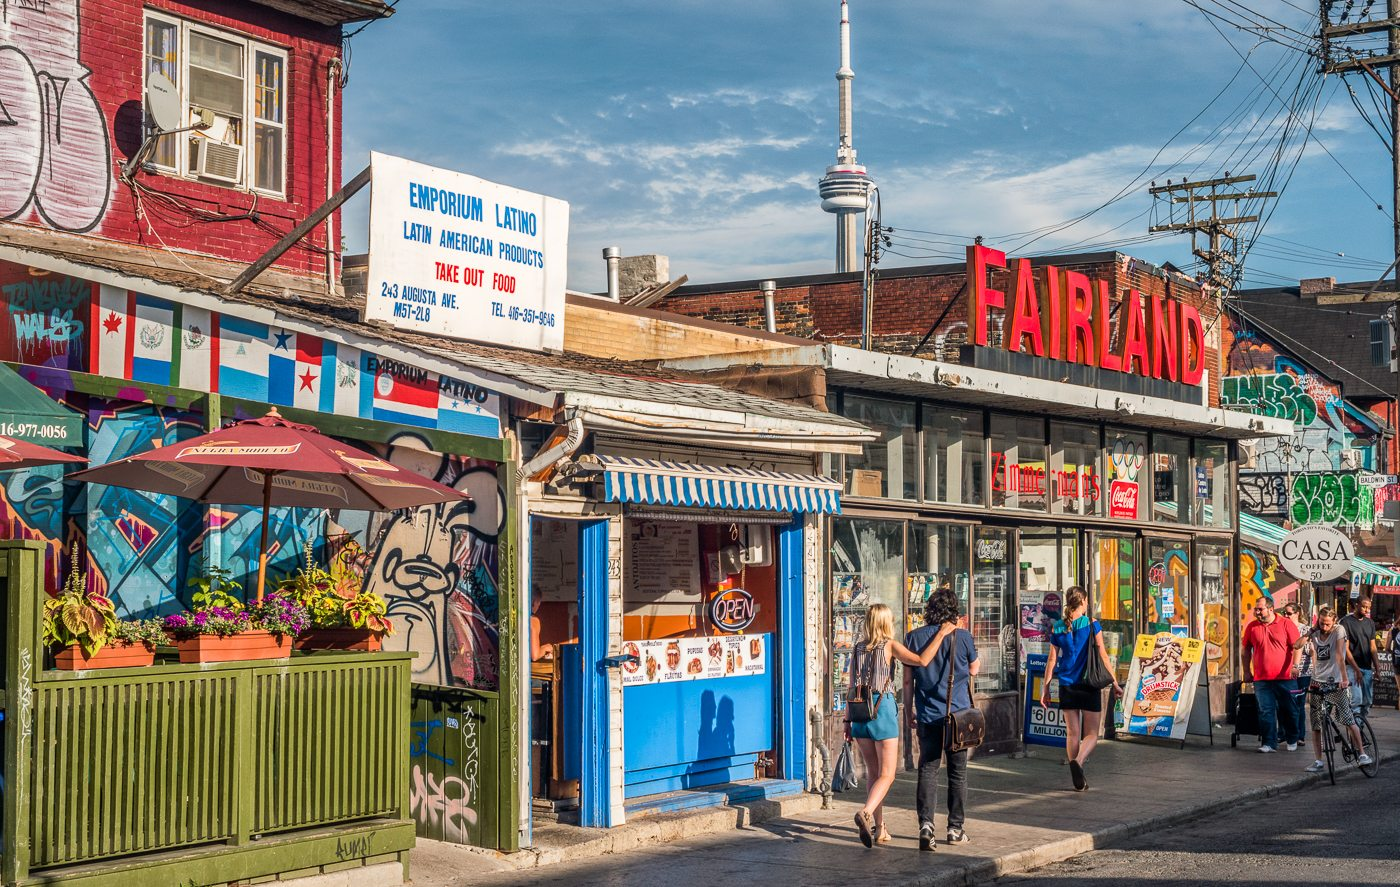 Although living spaces in urban areas are usually smaller, they are often walking distance from vibrant street life, shops, and services, like in Kensington Market, pictured here. Photo by Ryan in the Torontoist Flickr Pool.